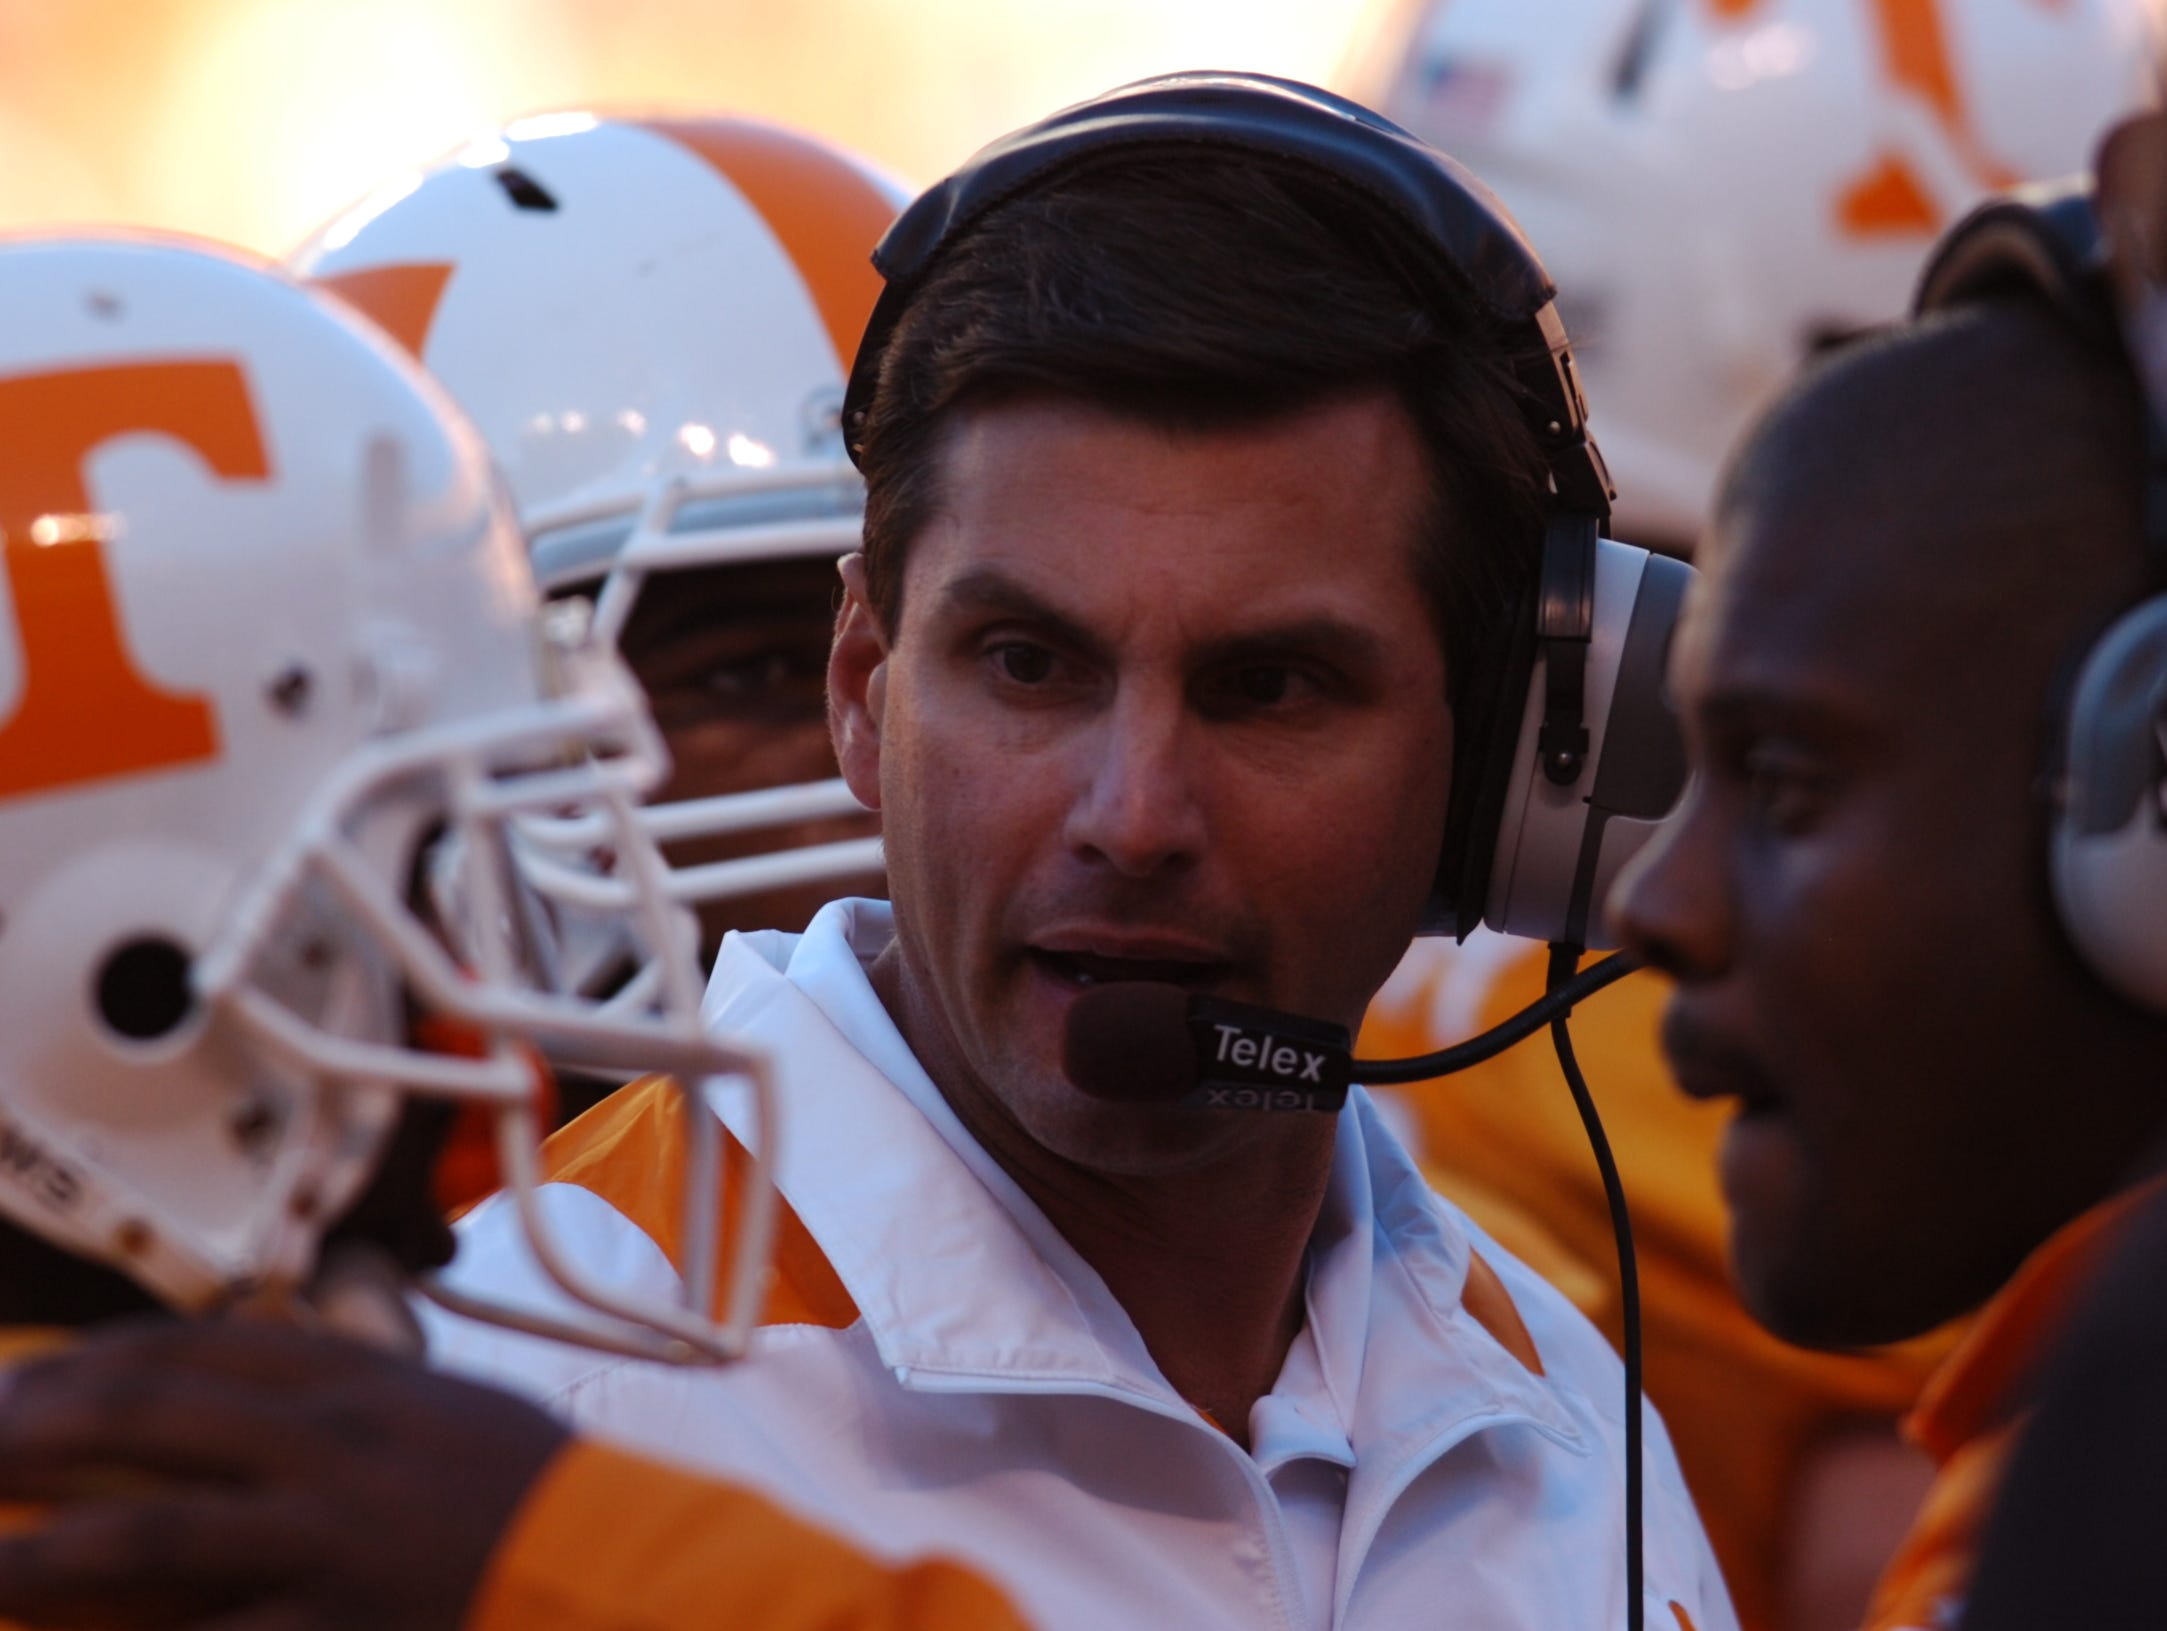 Tennessee head coach Derek Dooley addresses players as they prepare to take the field against UT Martin at Neyland Stadium on Saturday, Sept. 4, 2010. The Vols' season opener was a 50 - 0 victory in Derek Dooley's debut as head coach.